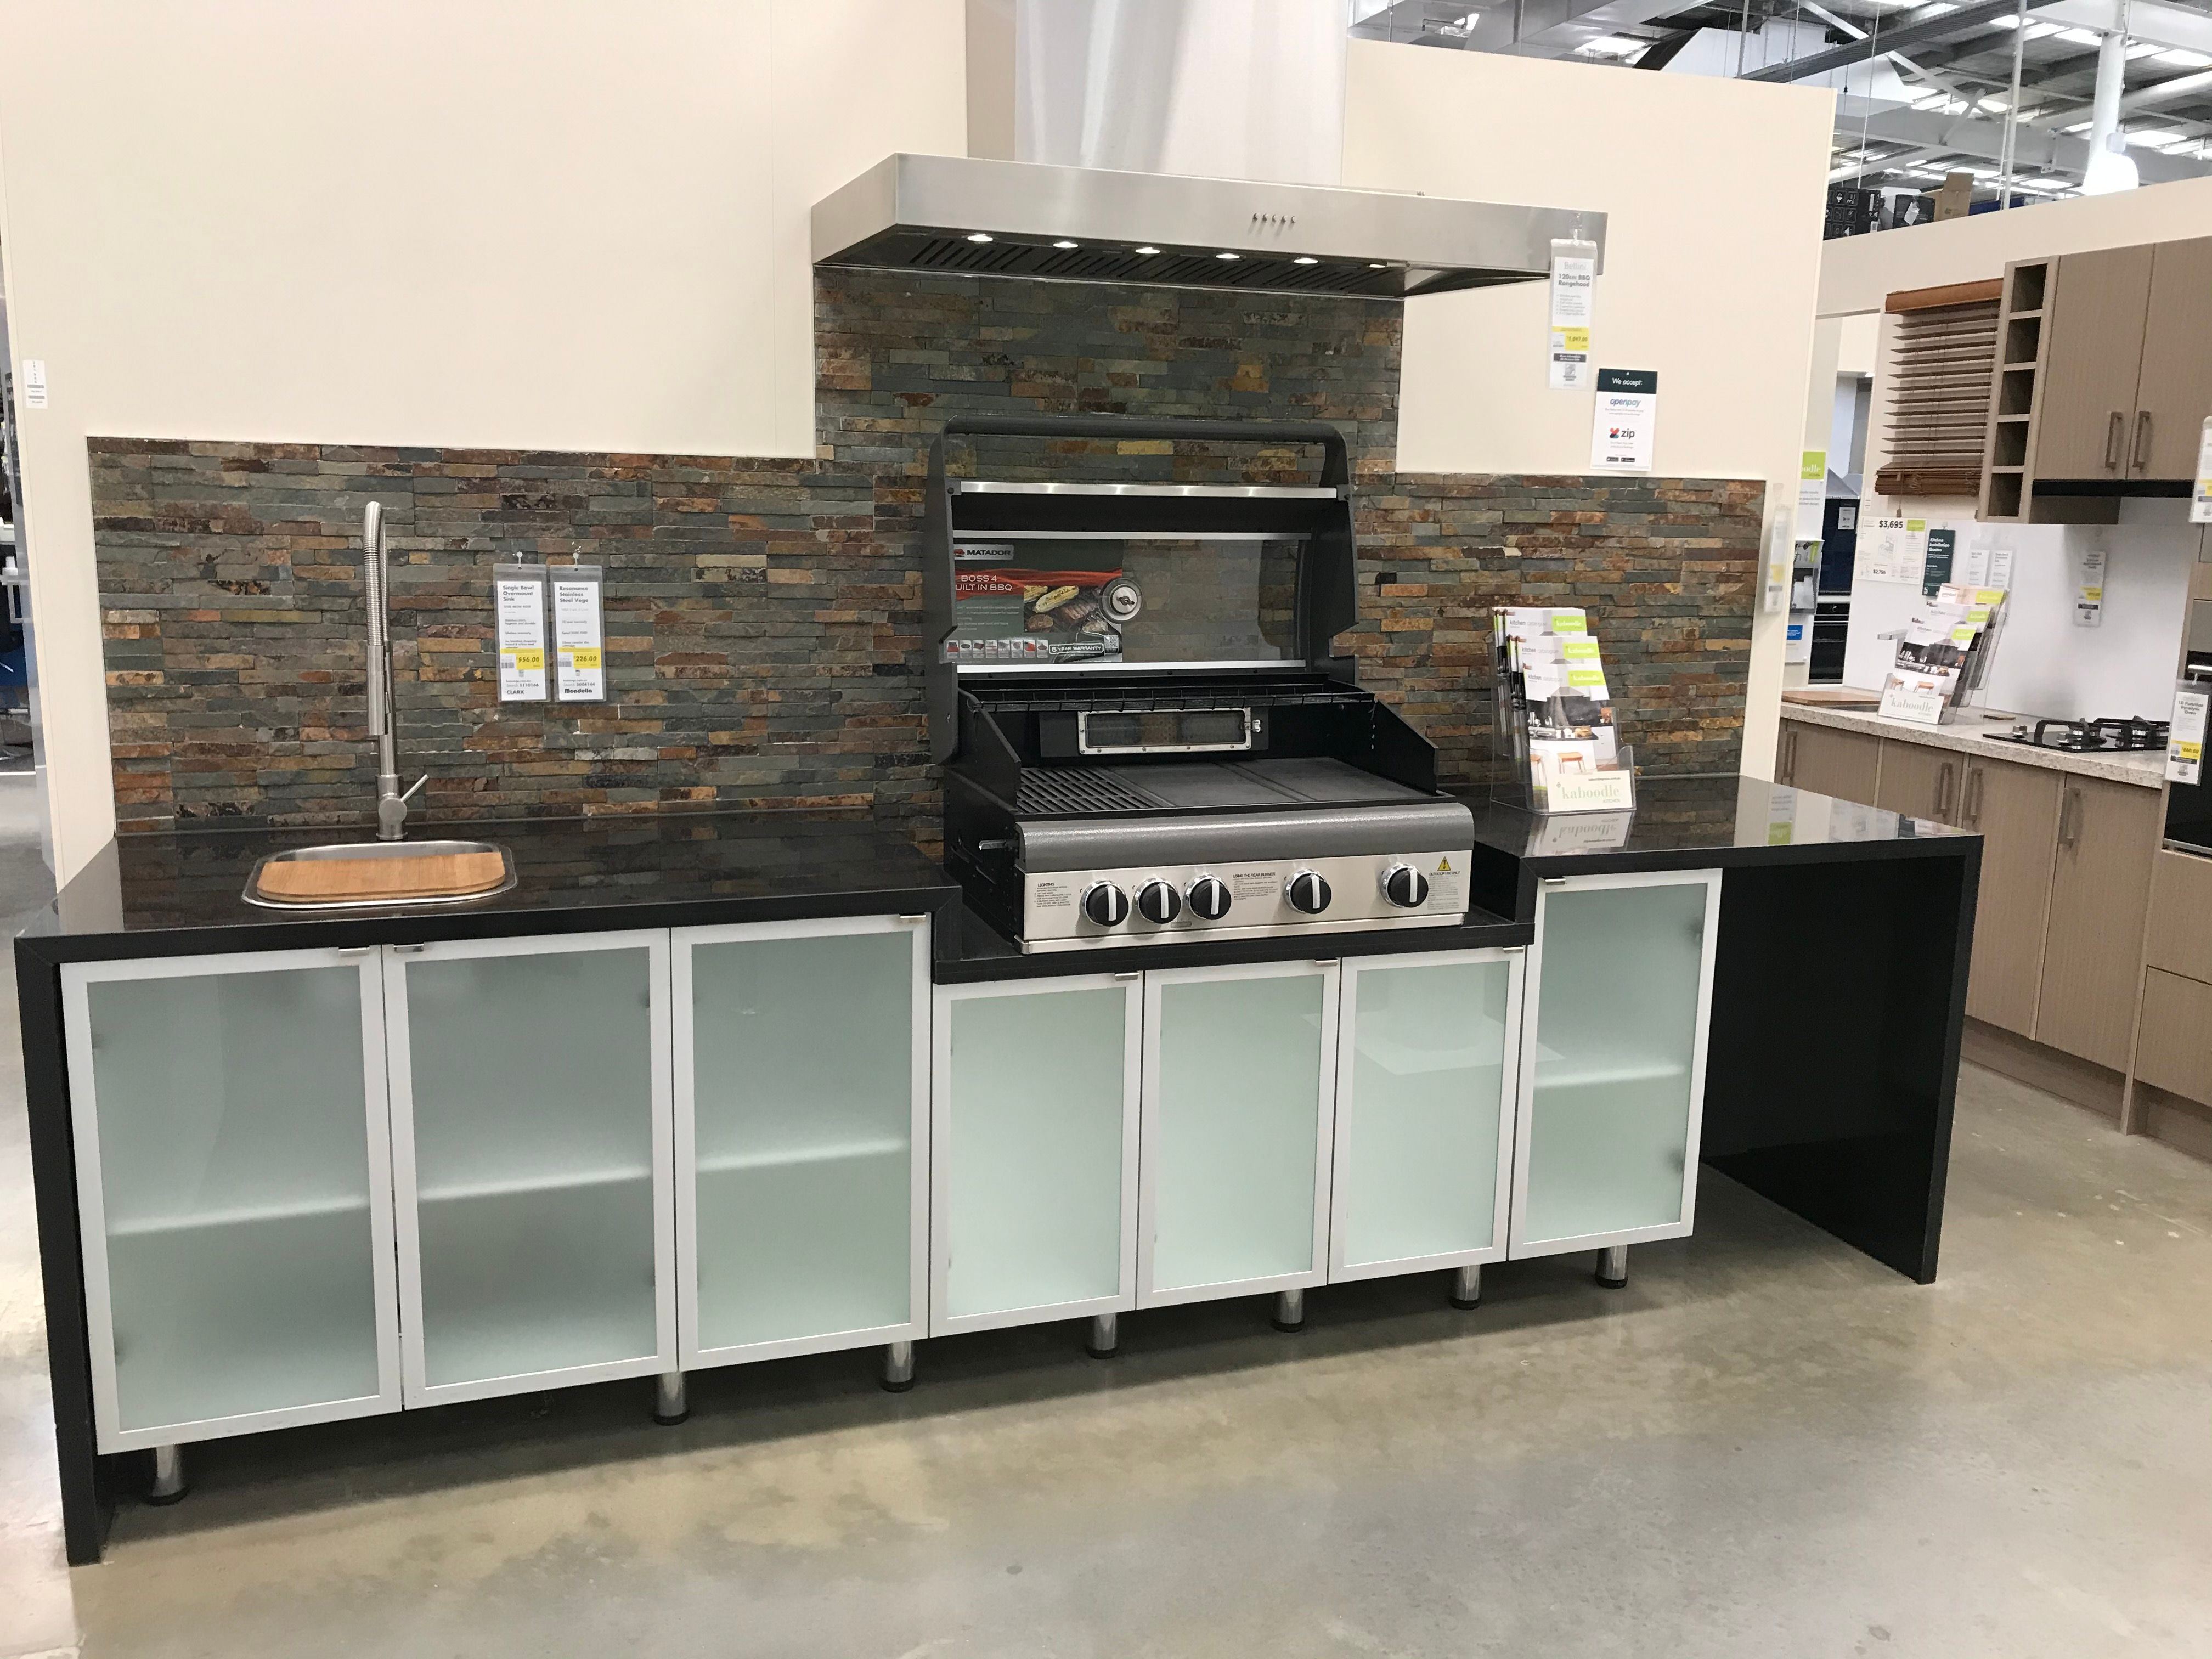 Outdoor kitchen ideas wanted  Bunnings Workshop community